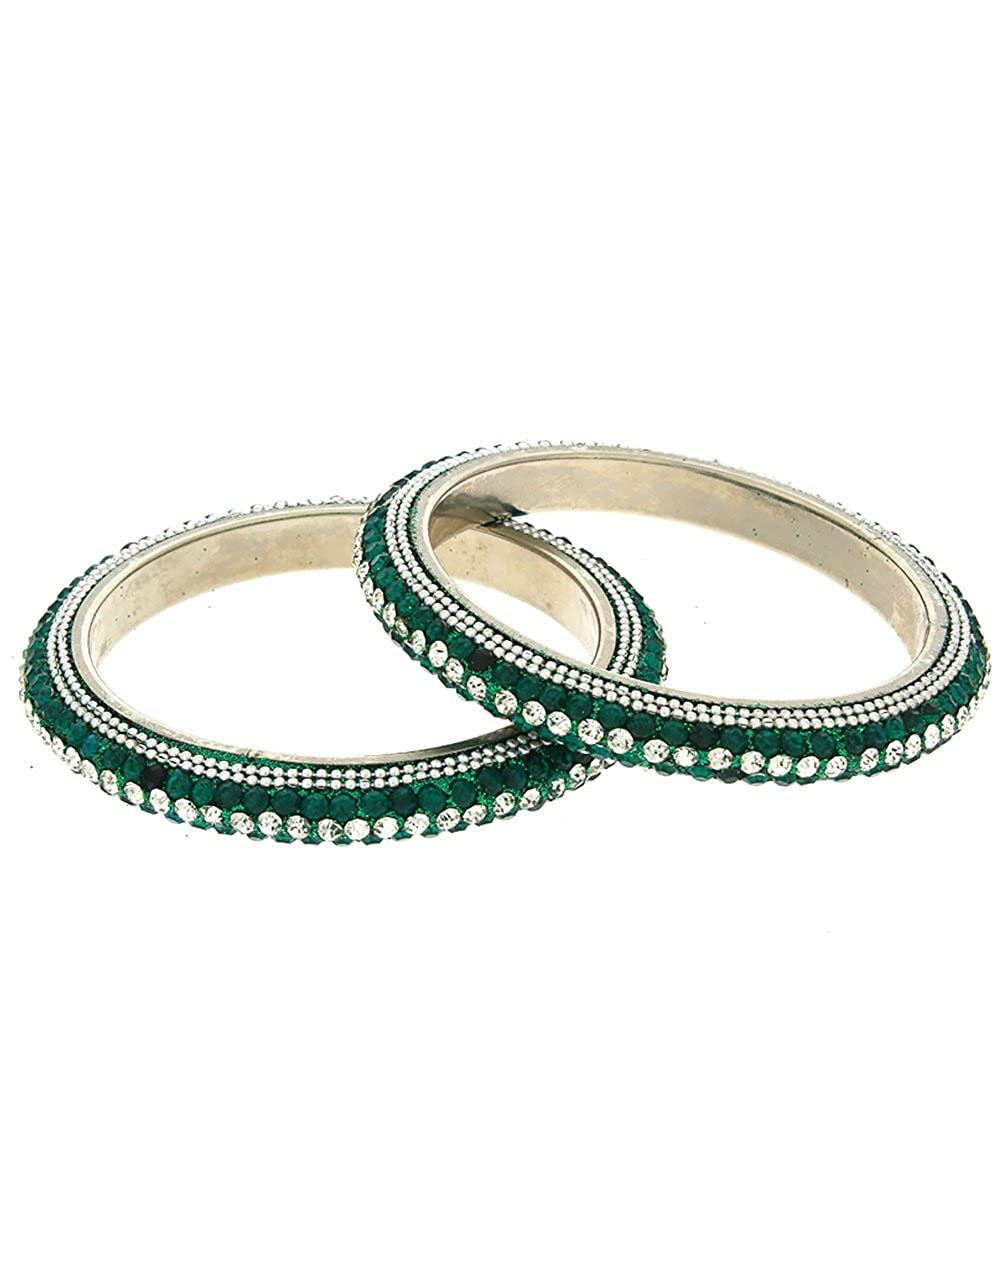 Anuradha Art Green Colour Styled with Cheed Beads Designer Ethnic Bangles Set for Women//Girls